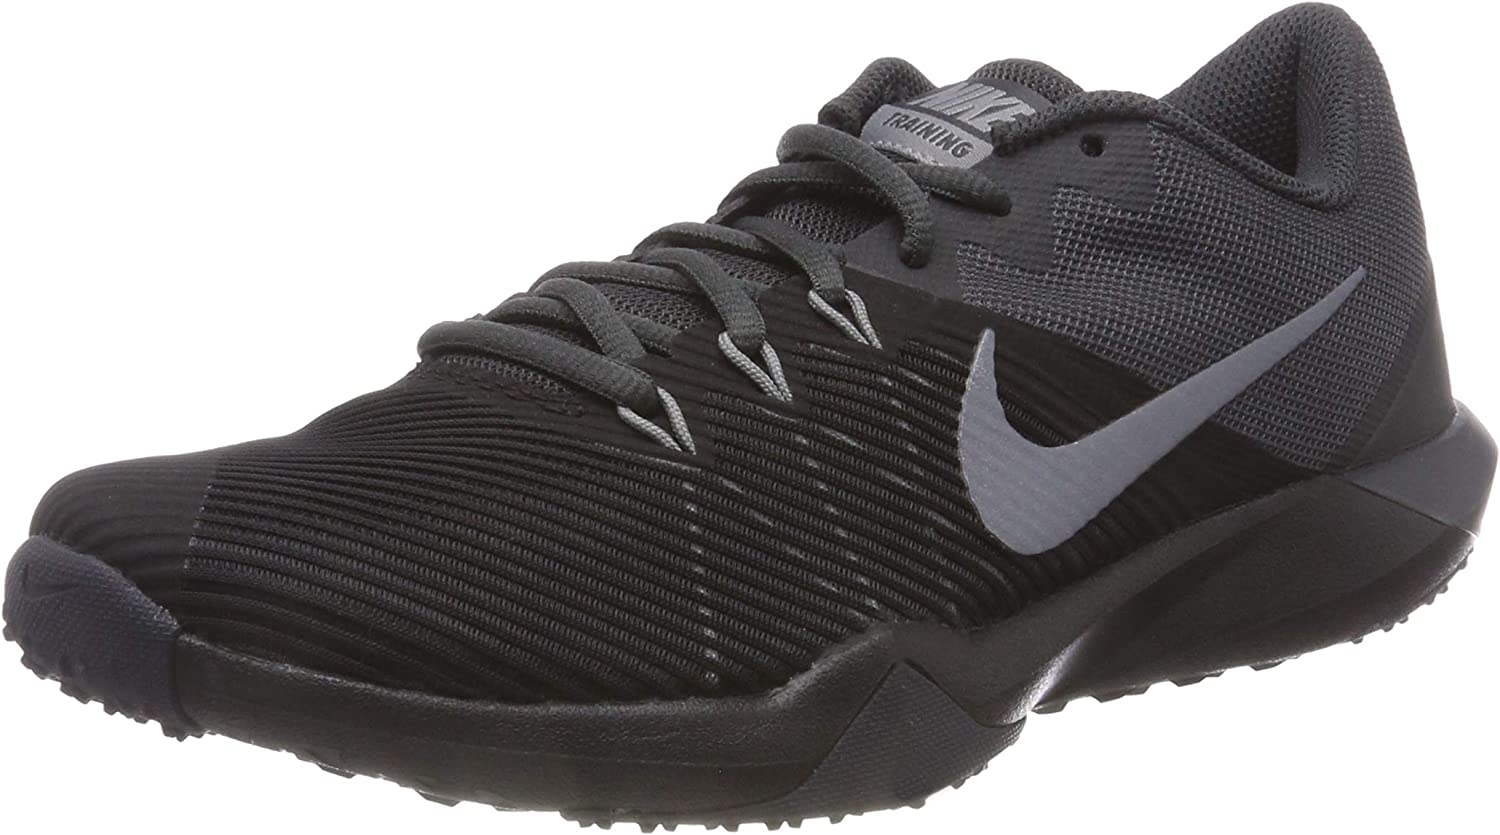 Nike Men s Retaliation Trainer Cross